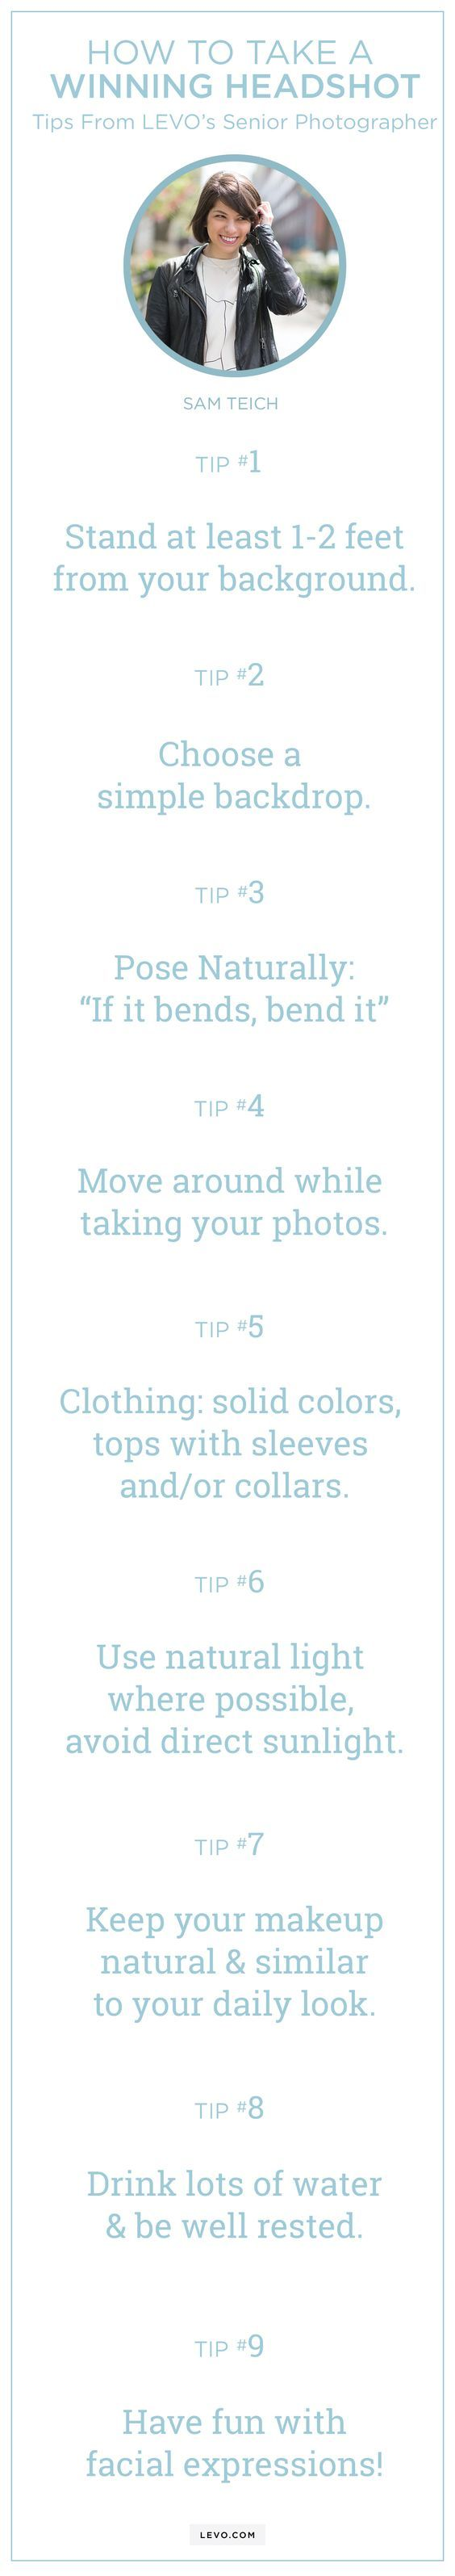 Use These Tips To Create A Professional LinkedIn Profile Pic.